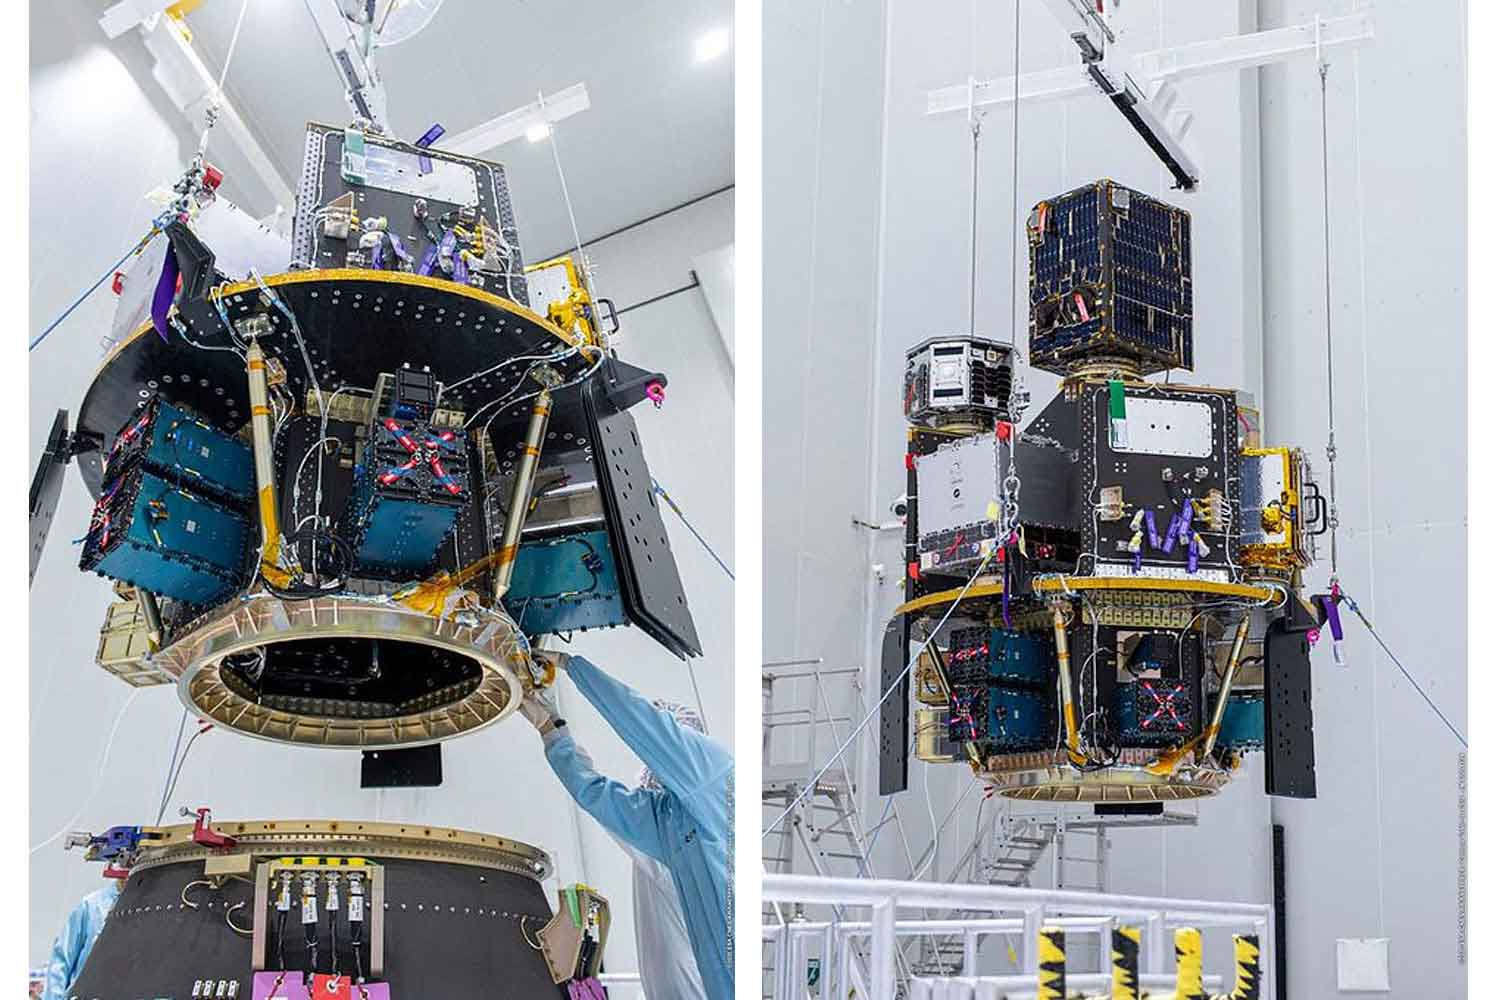 The fully equipped Napa-1 satellite to be launched on Friday at 8.51am local time from a base in French Guiana. It will take images of the Earth at about 500 kilometres up in space.(Royal Thai Air Force photo)